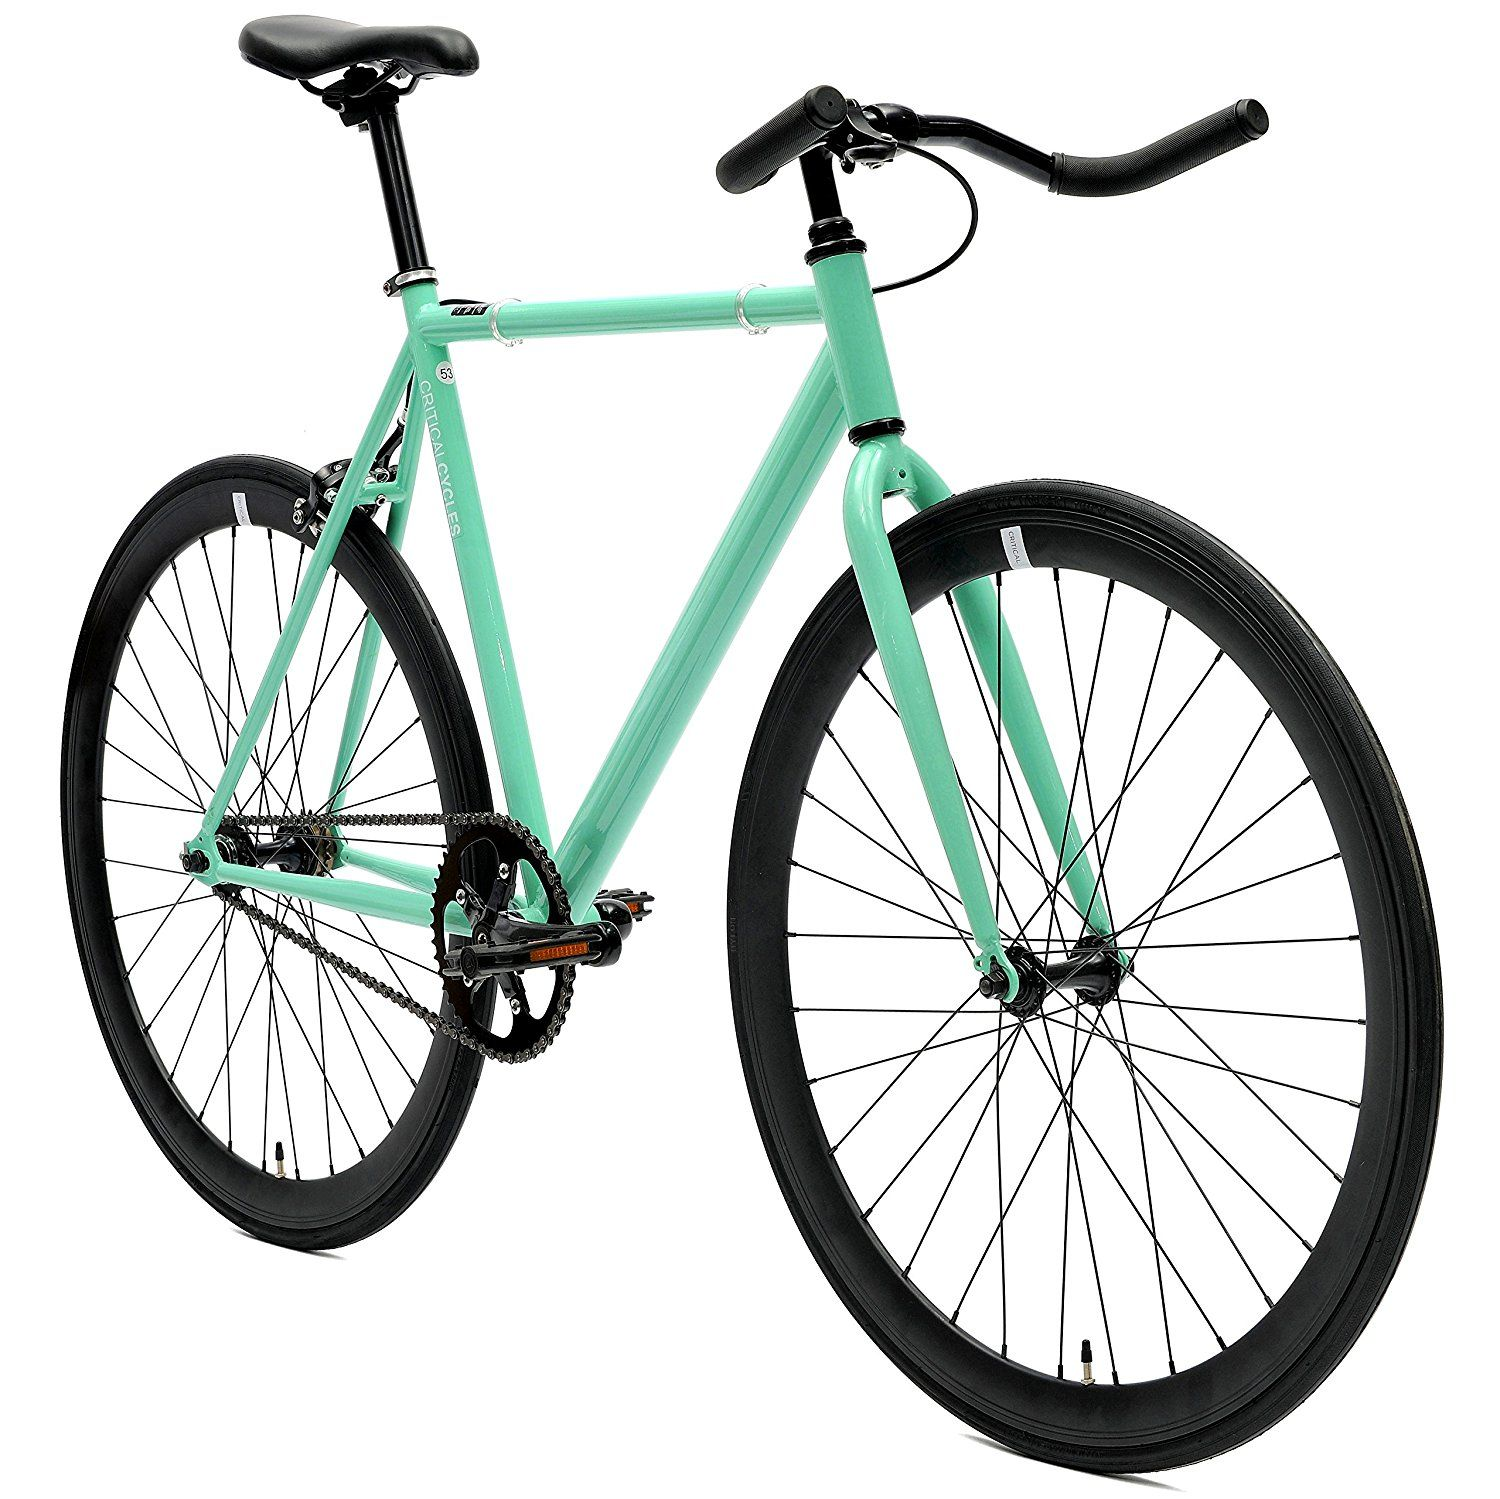 An ultimate critical cycles classic fixed gear bike review